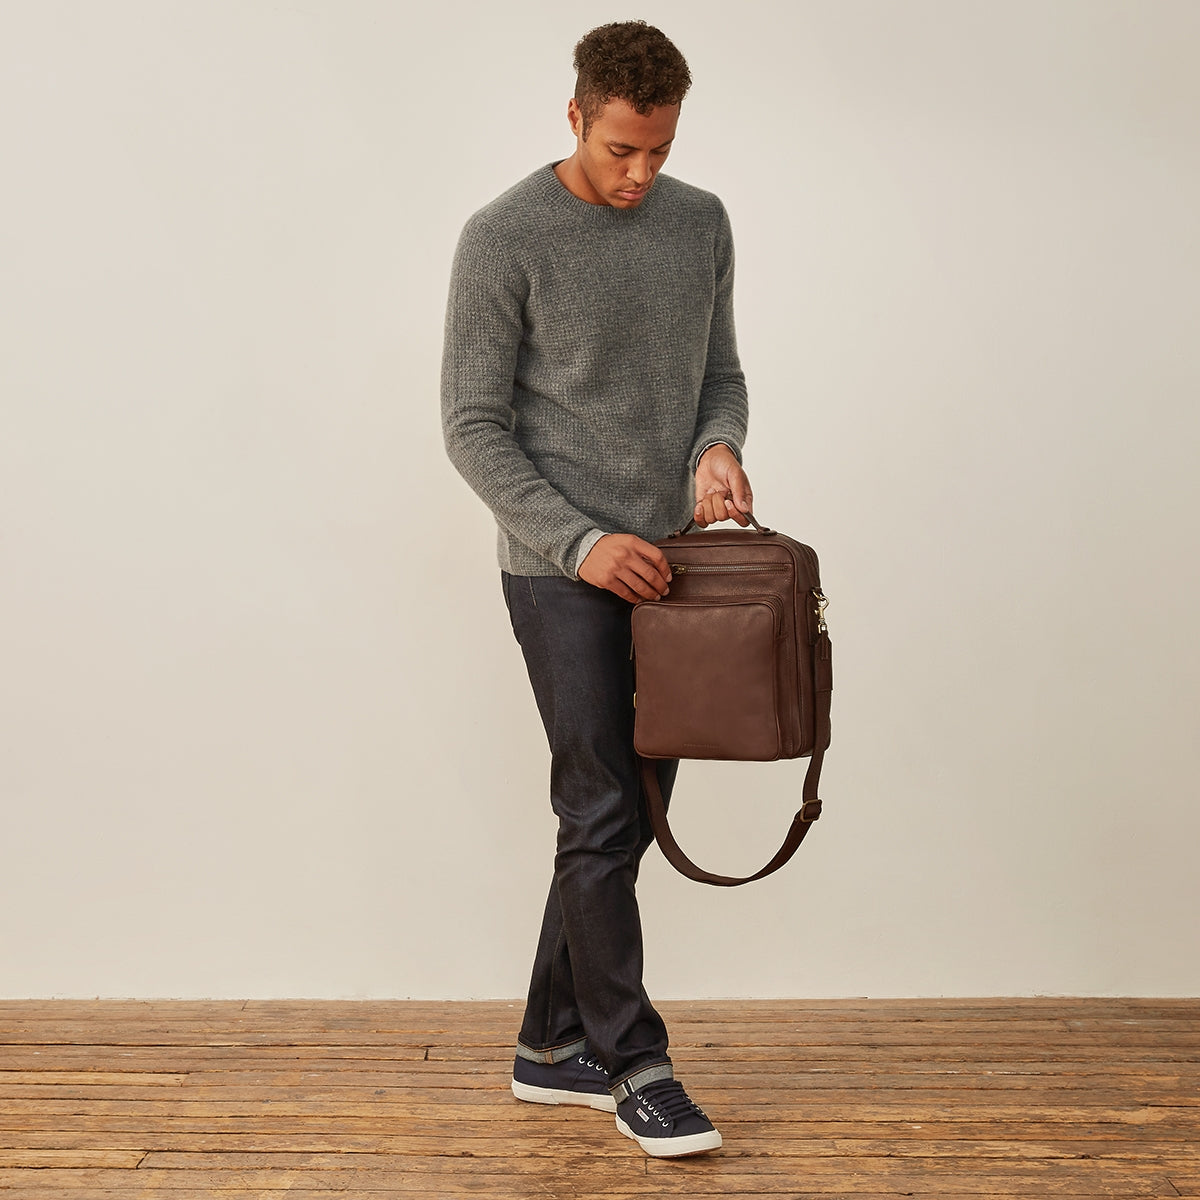 Image 10 of the 'SantinoL' Men's Brown Leather Convertible Backpack Shoulder